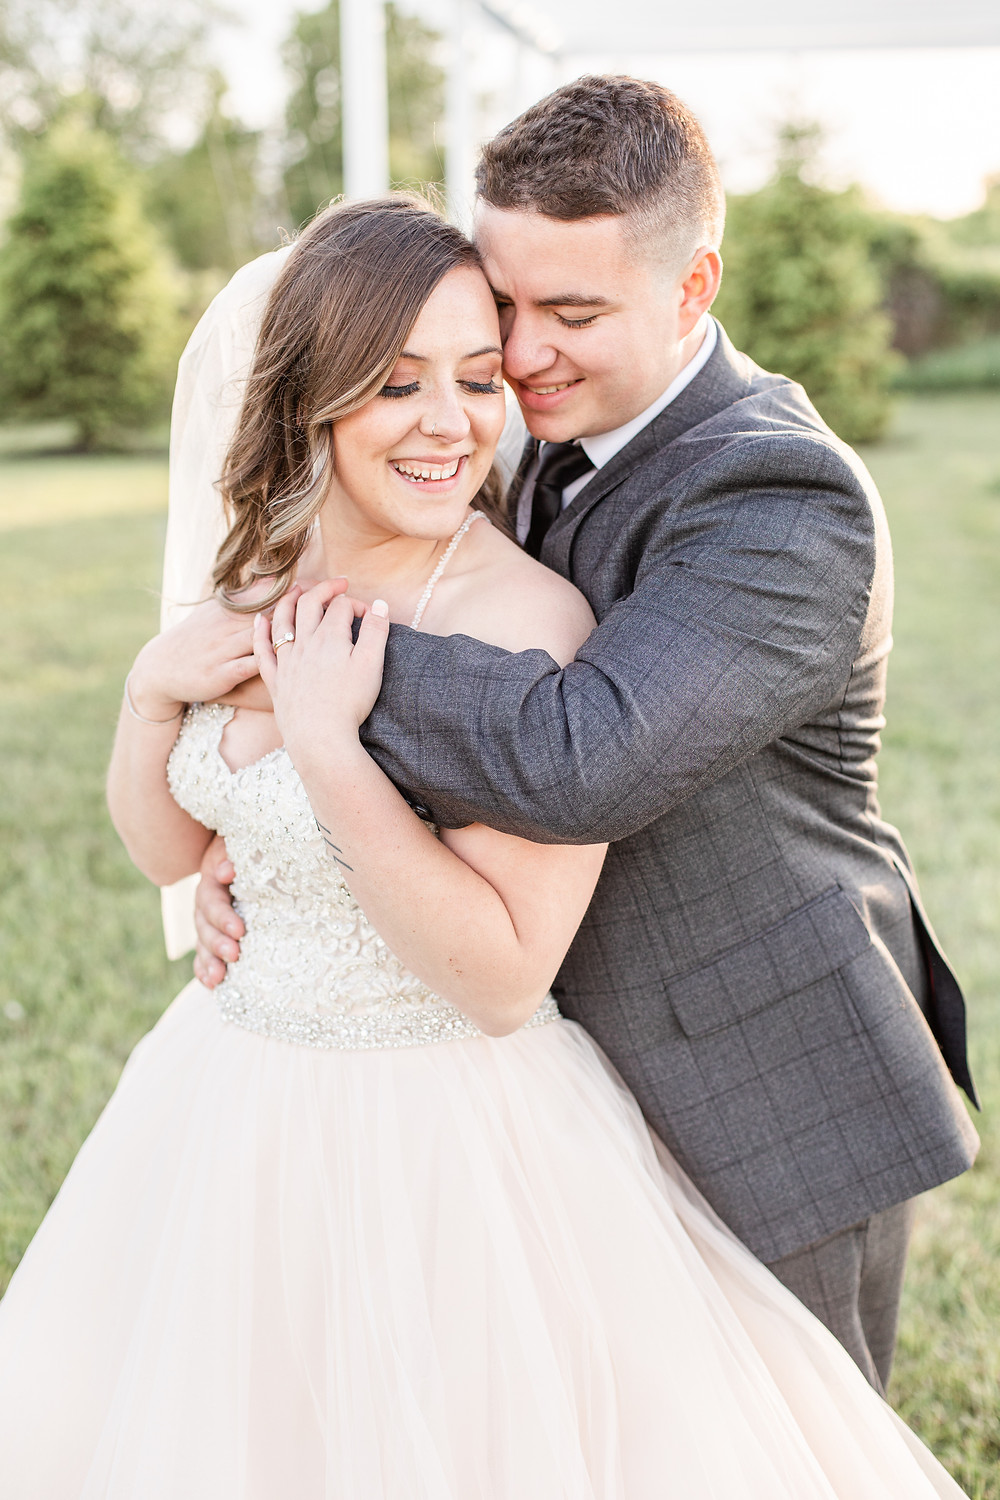 Josh and Andrea wedding photography husband and wife photographer team michigan pictures hydrangea blu barn bride and groom sunset smiling laughing